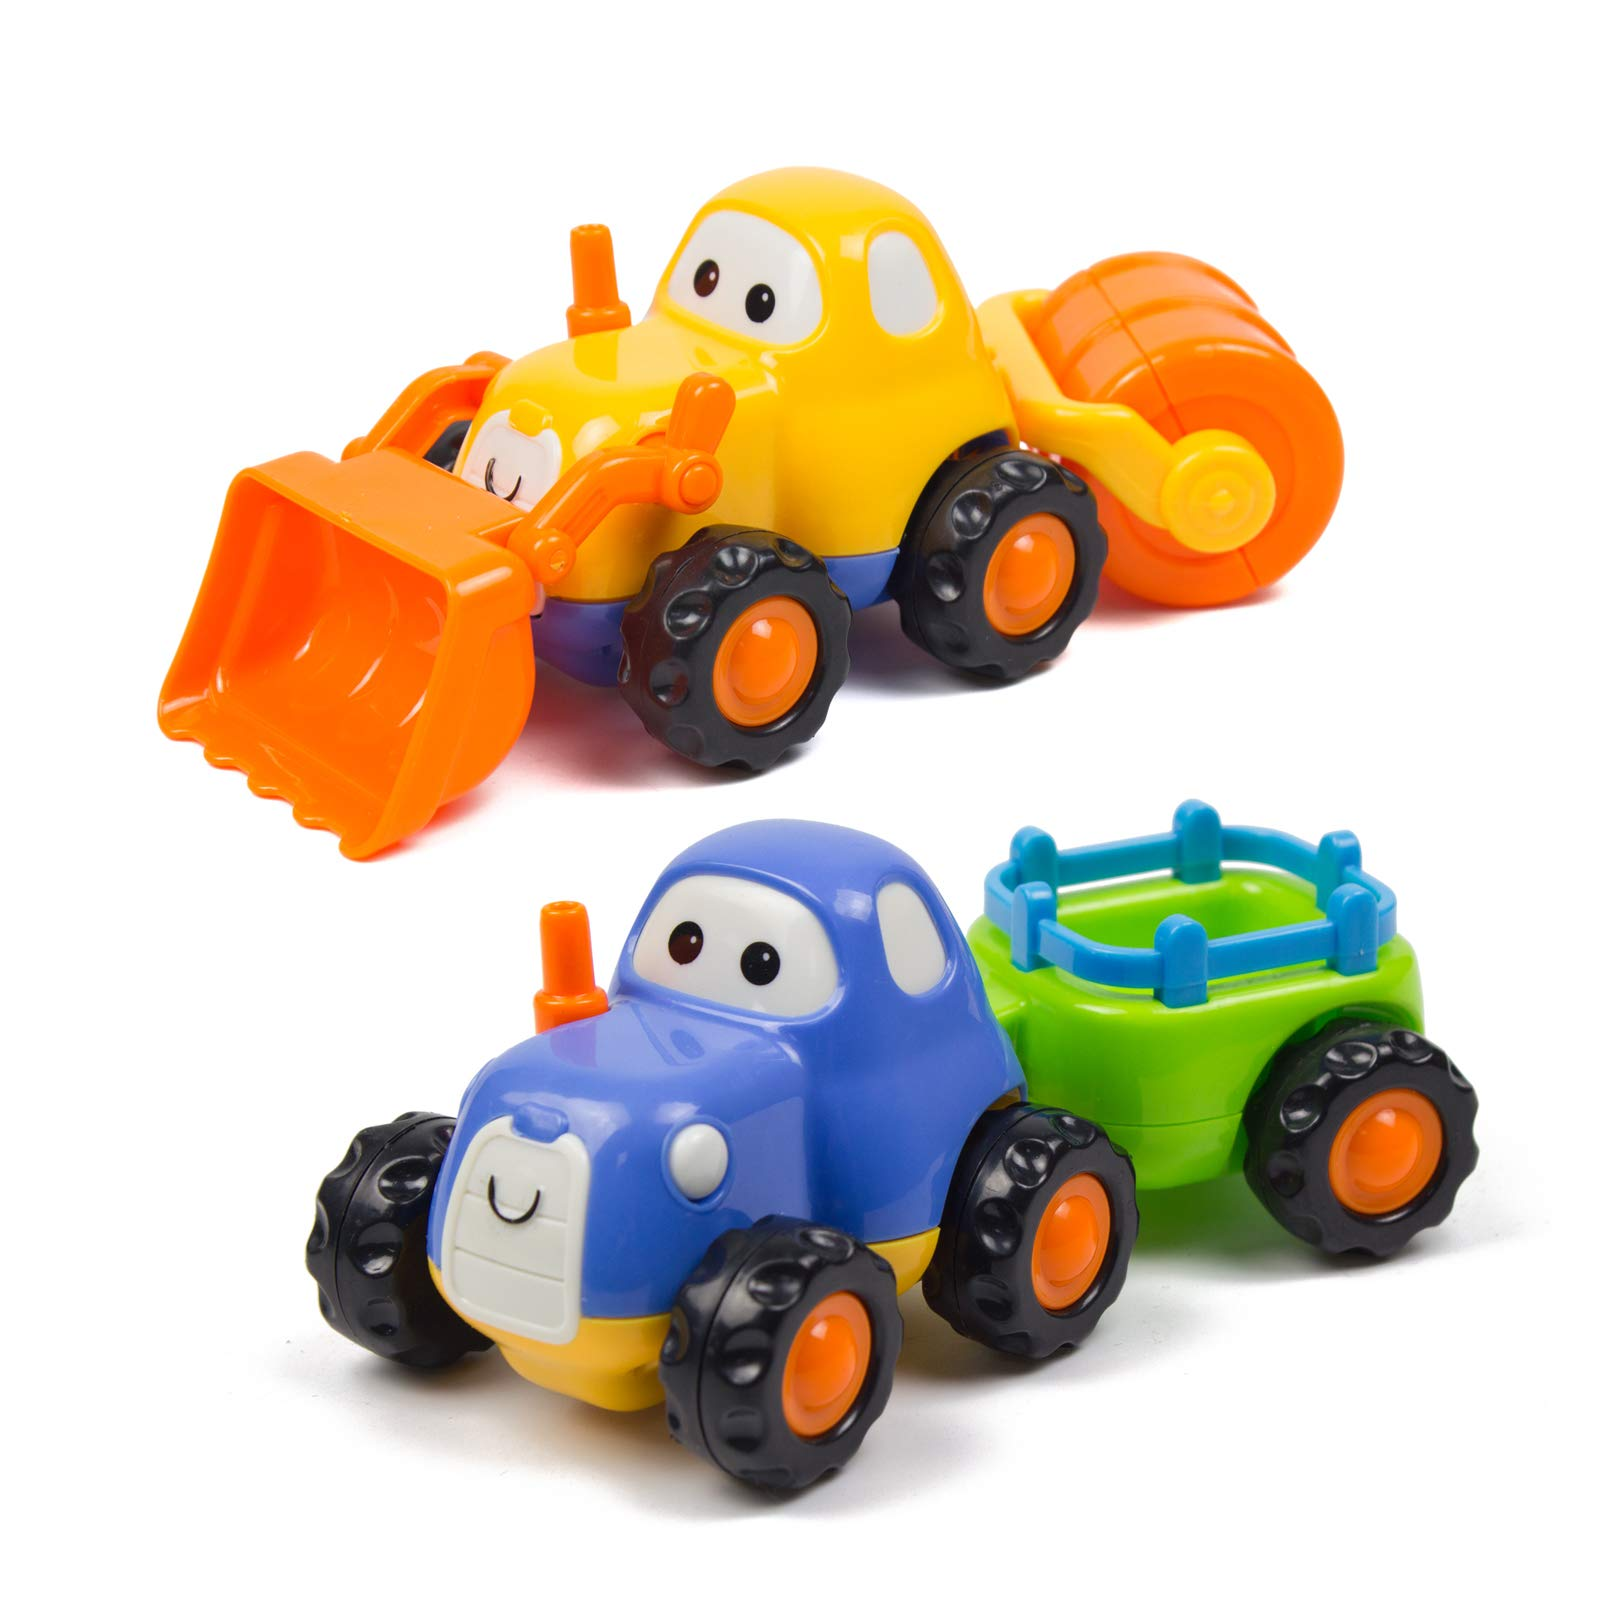 Woby Push and Go Friction Powered Car Engineering Construction Vehicles Toys Set Tractor Bulldozer Truck Early Educational for 1 Year Old Baby Toddler Boys